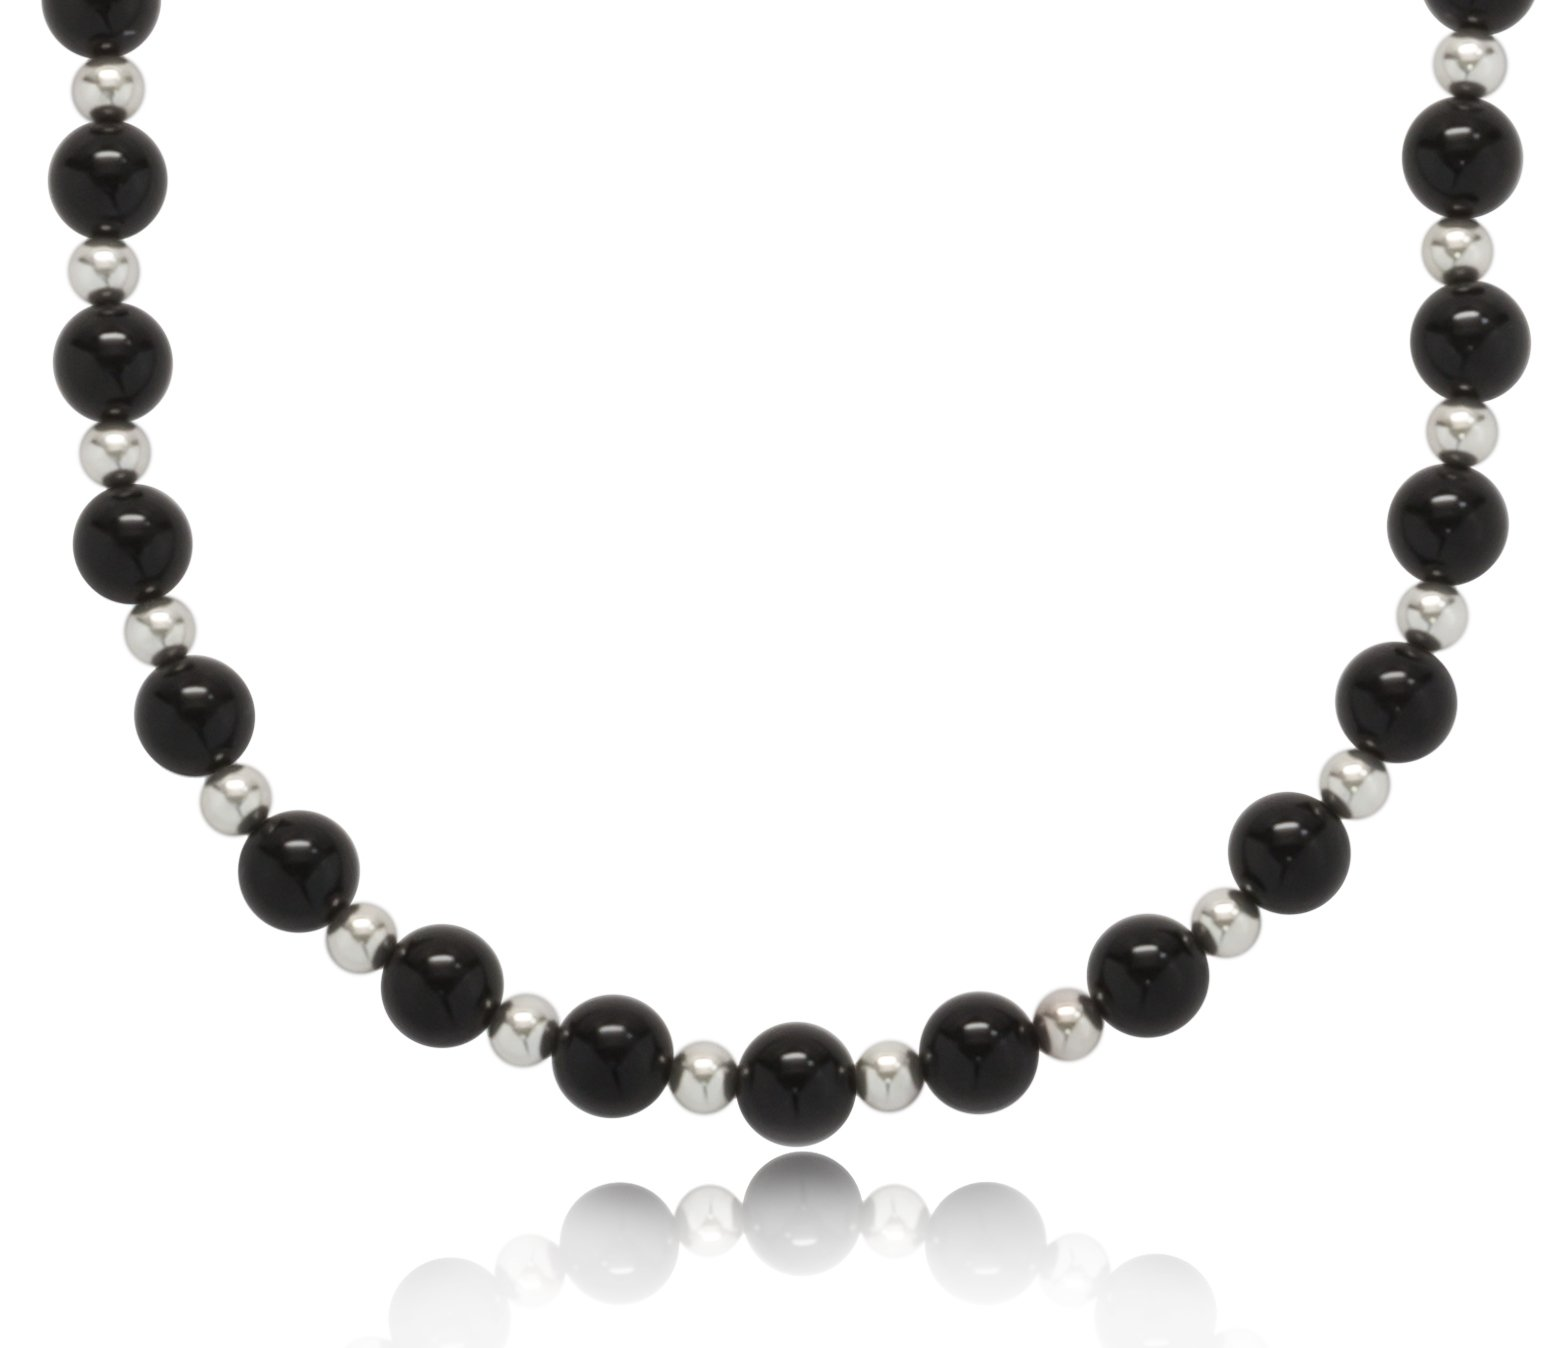 ISAAC WESTMAN 8mm Polished Black Onyx Endless Necklace with .925 Sterling Silver Beads, 32'' by ISAAC WESTMAN